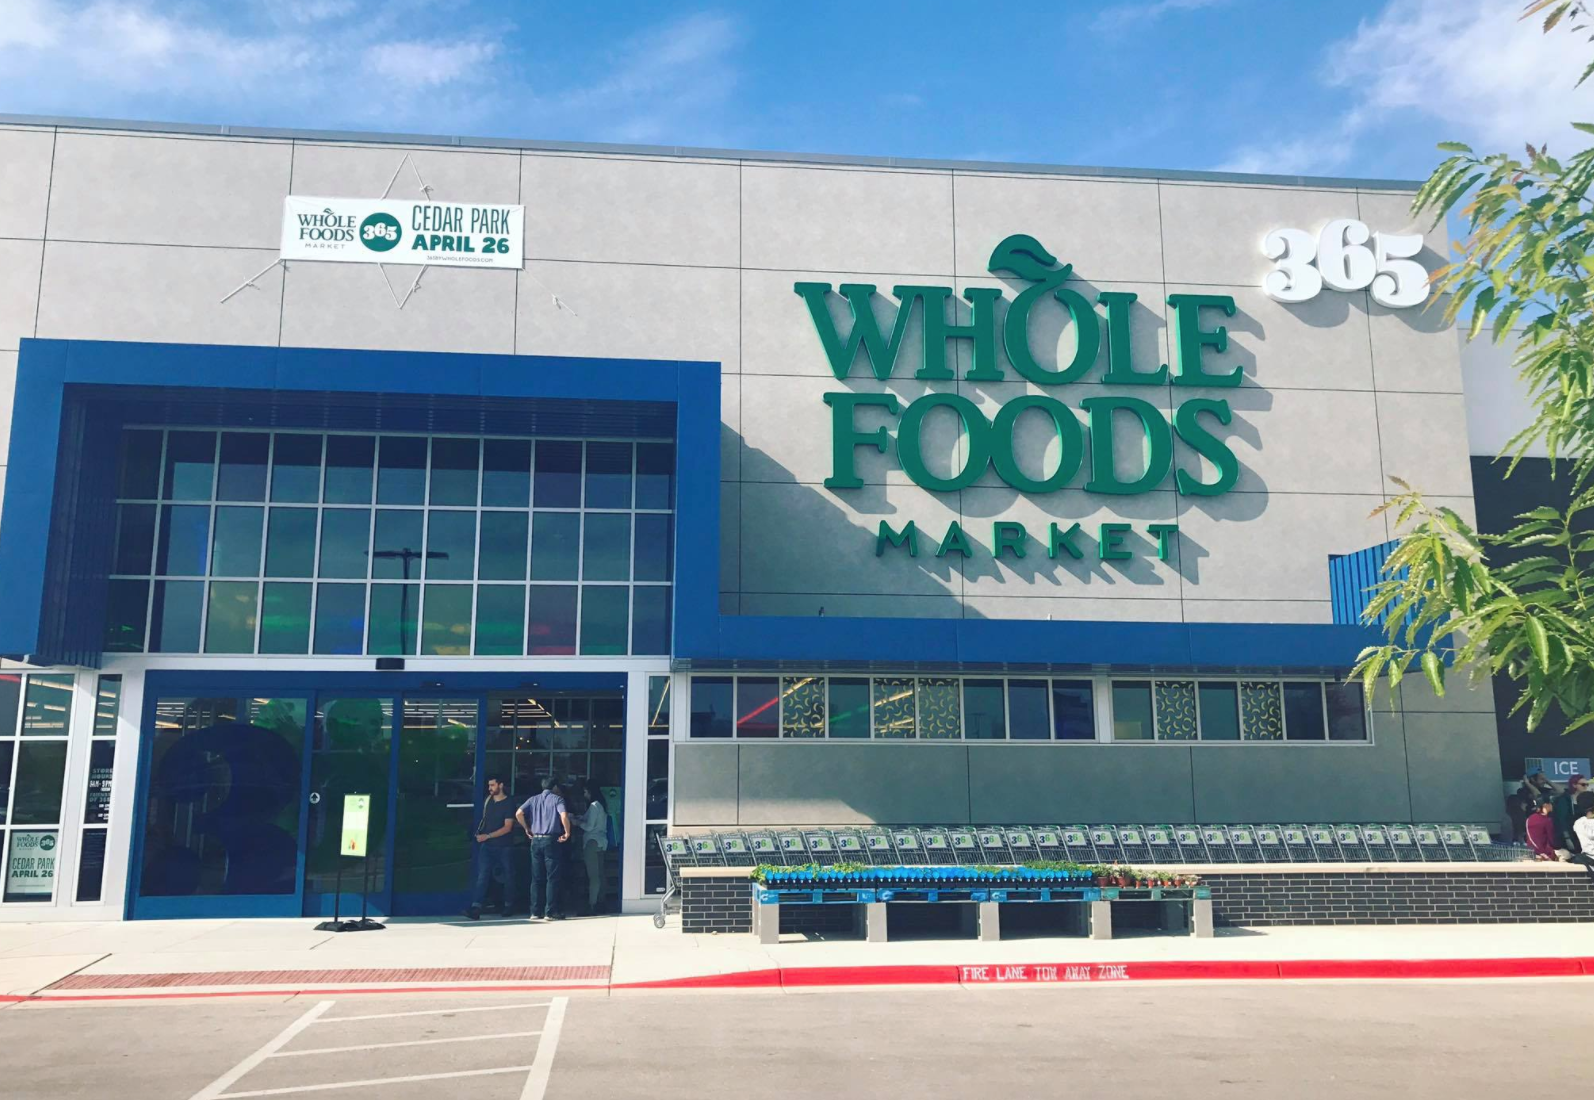 Amazon Tests Two-Hour Grocery Delivery Via Whole Foods